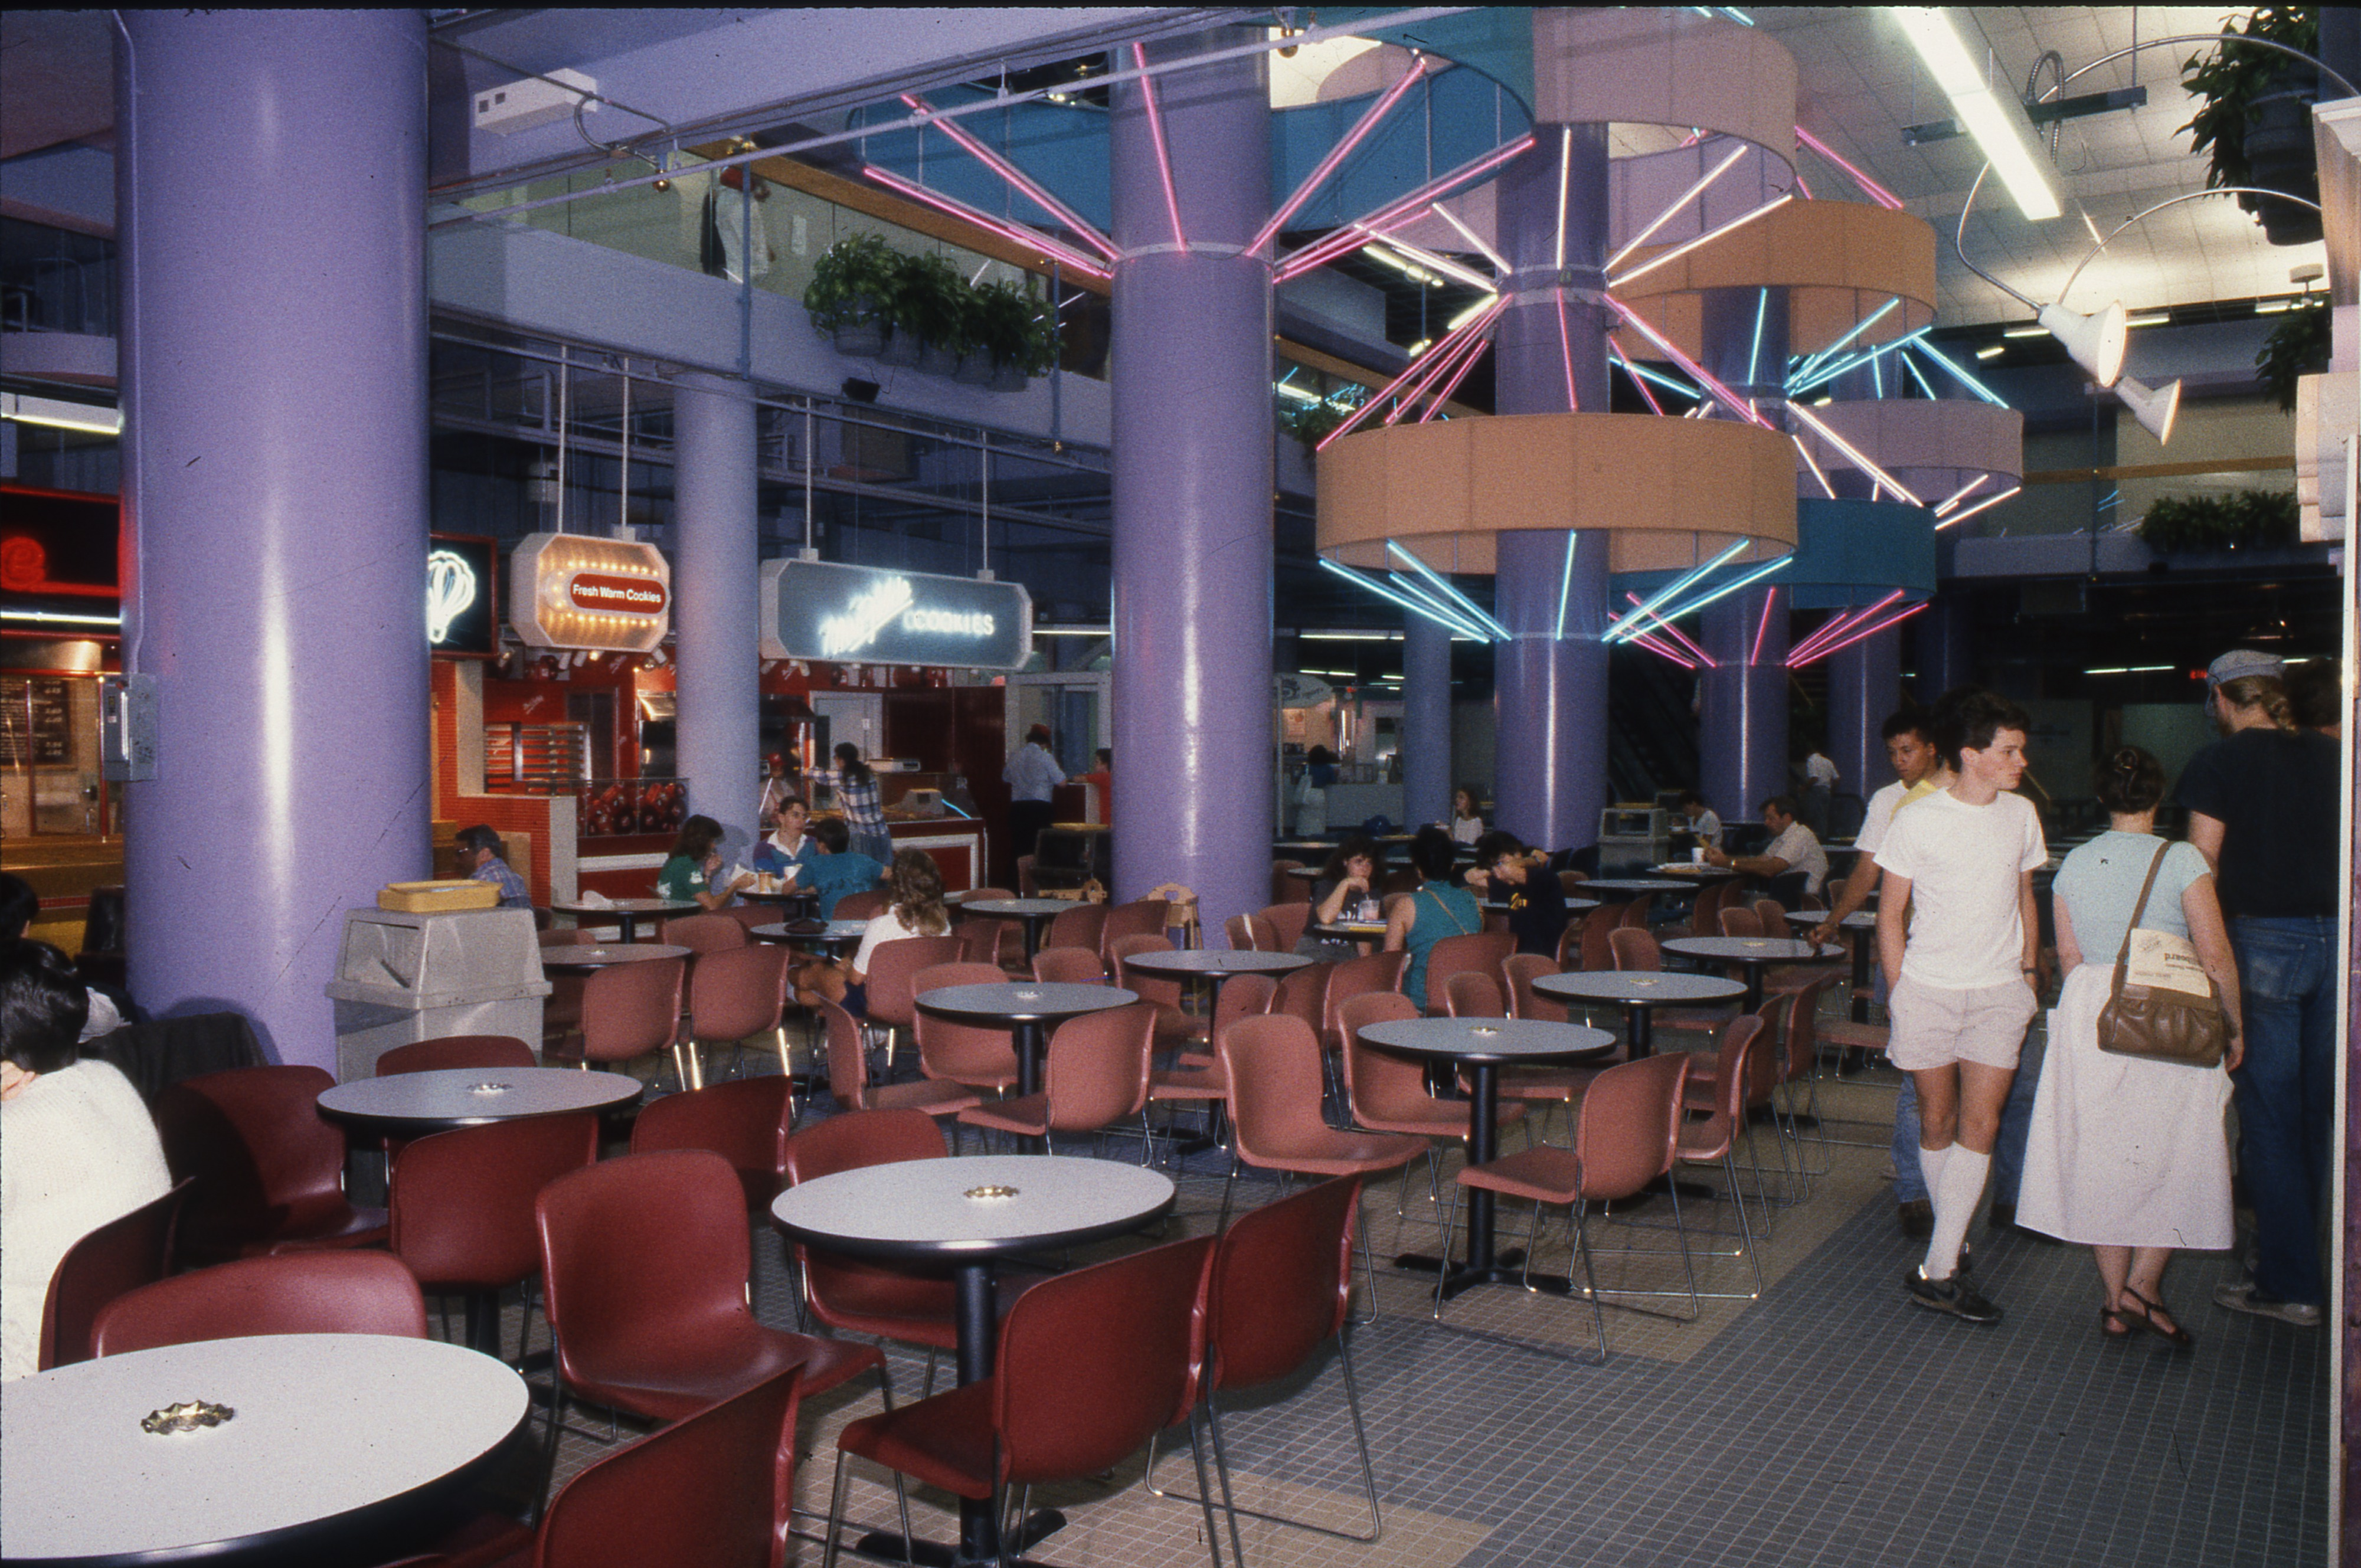 Tally Hall Food Court, July 23, 1986 image